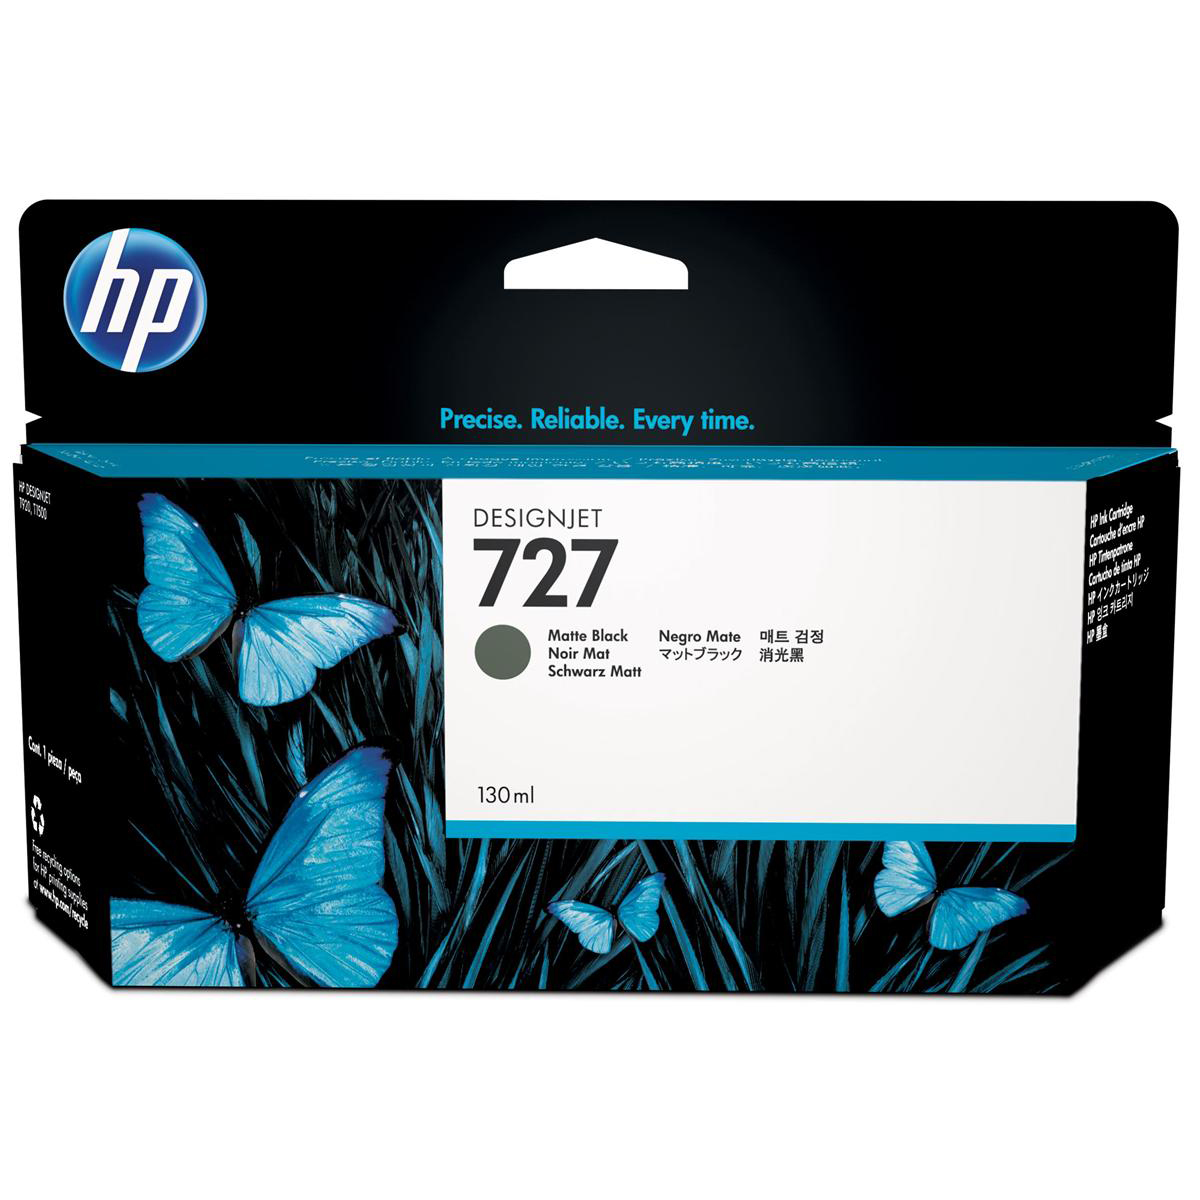 Hewlett Packard [HP] No. 727 Designjet Inkjet Cartridge 130ml Matte Black Ref B3P22A